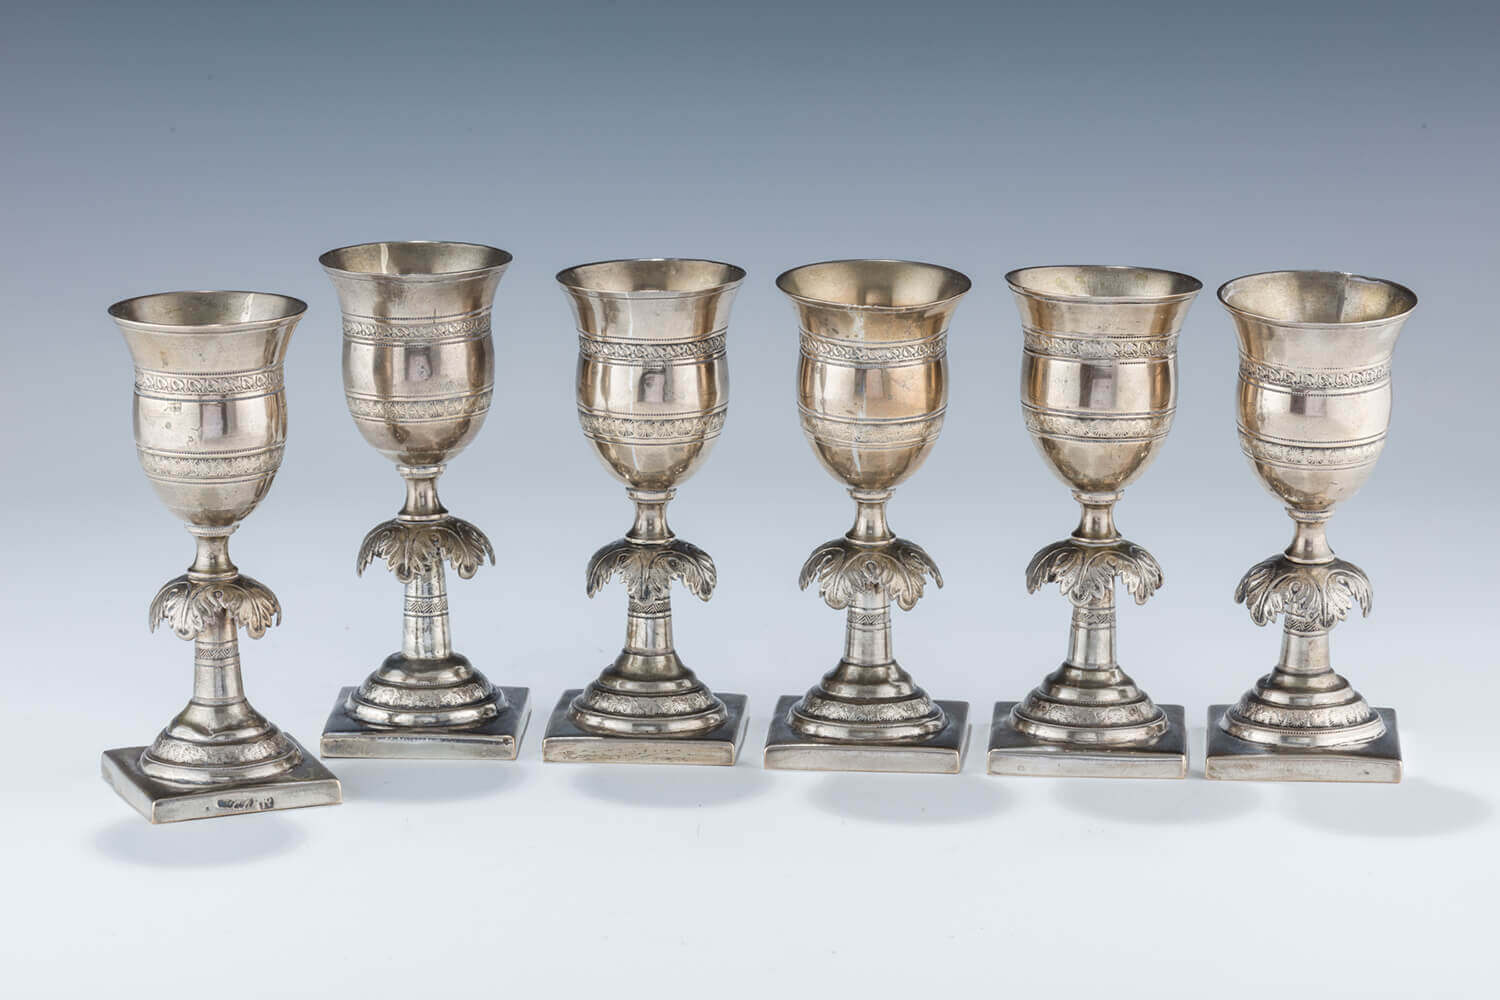 023. A SET OF SIX KIDDUSH GOBLETS